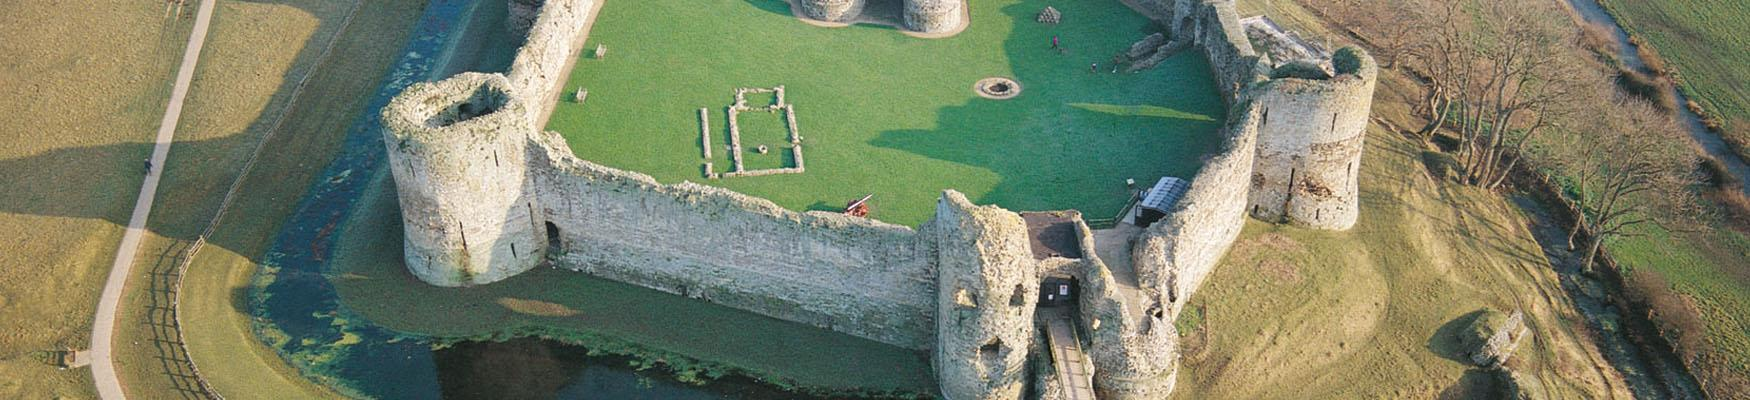 Pevensey Castle from above